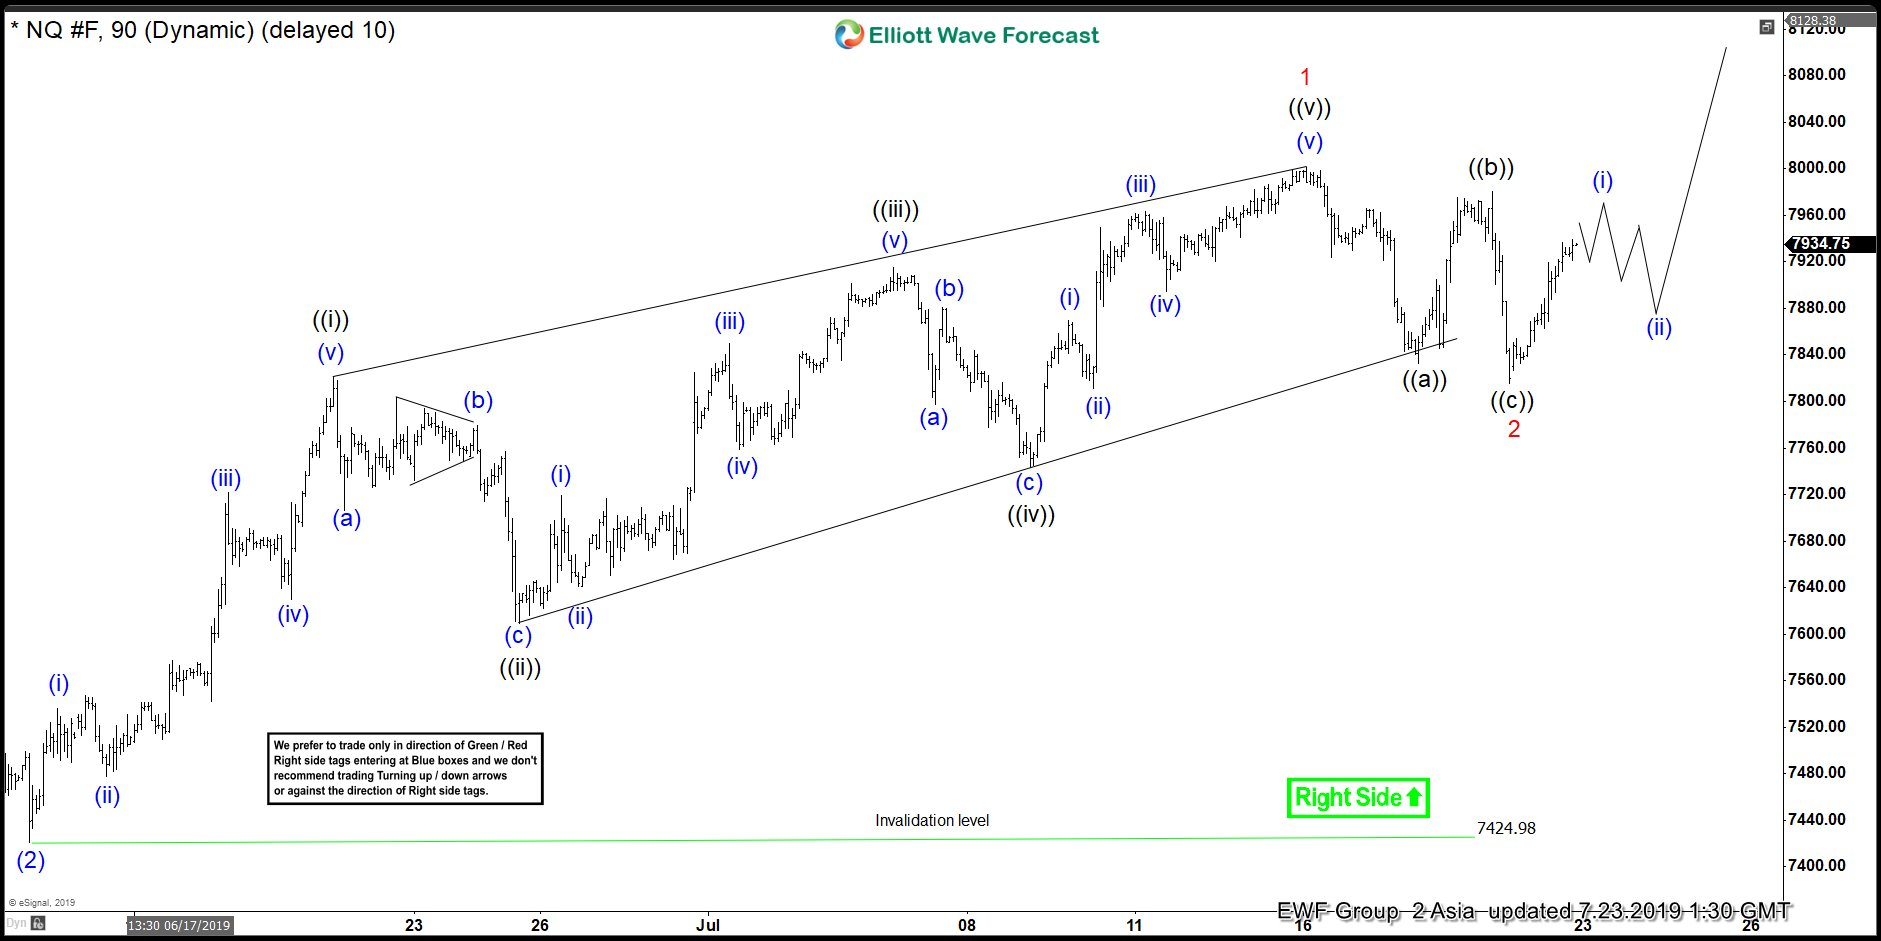 Nasdaq Elliott Wave View: Finished the Correction and Rallied